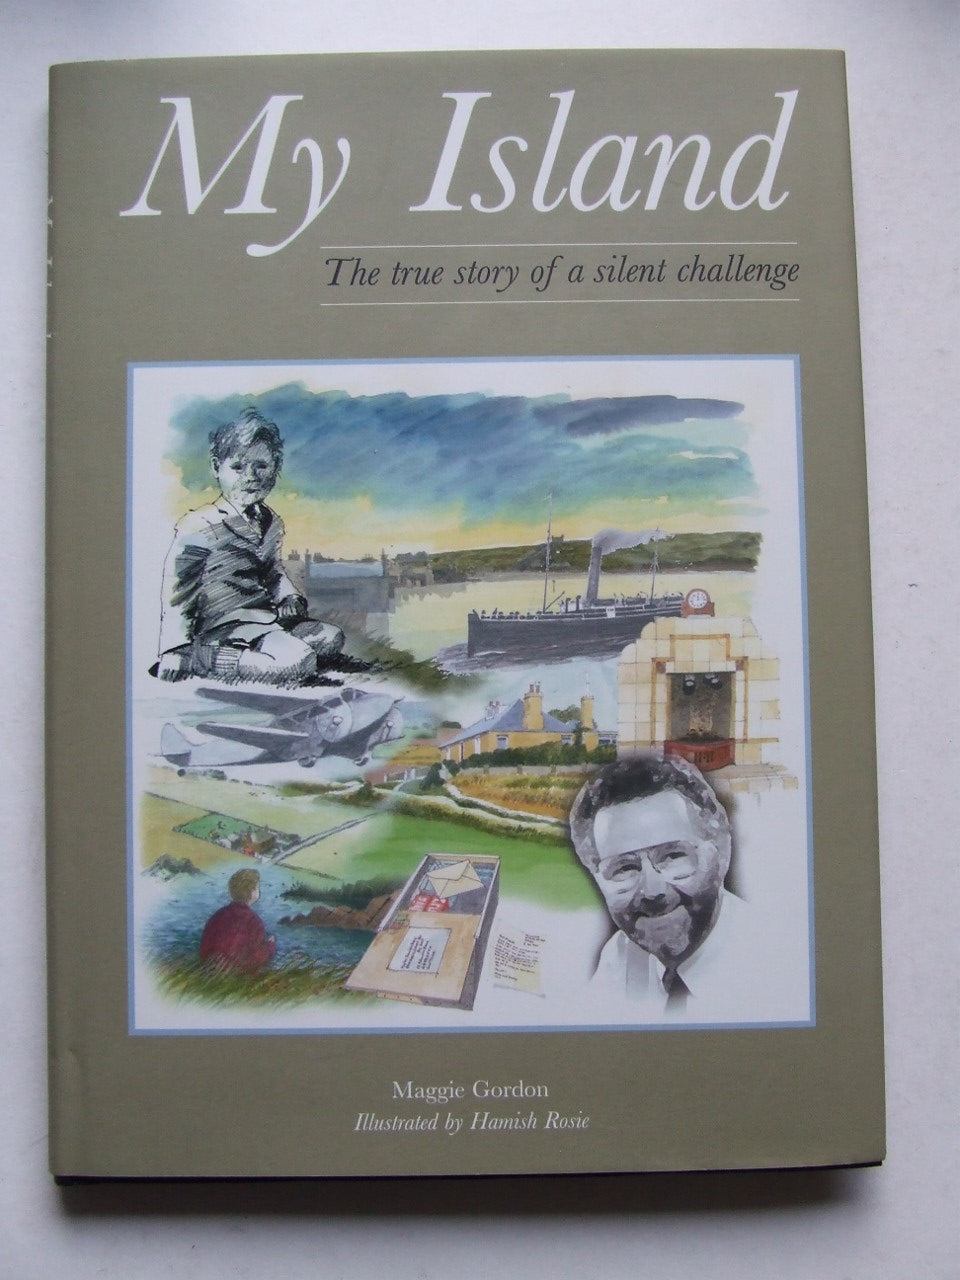 My Island, the true story of a silent challenge